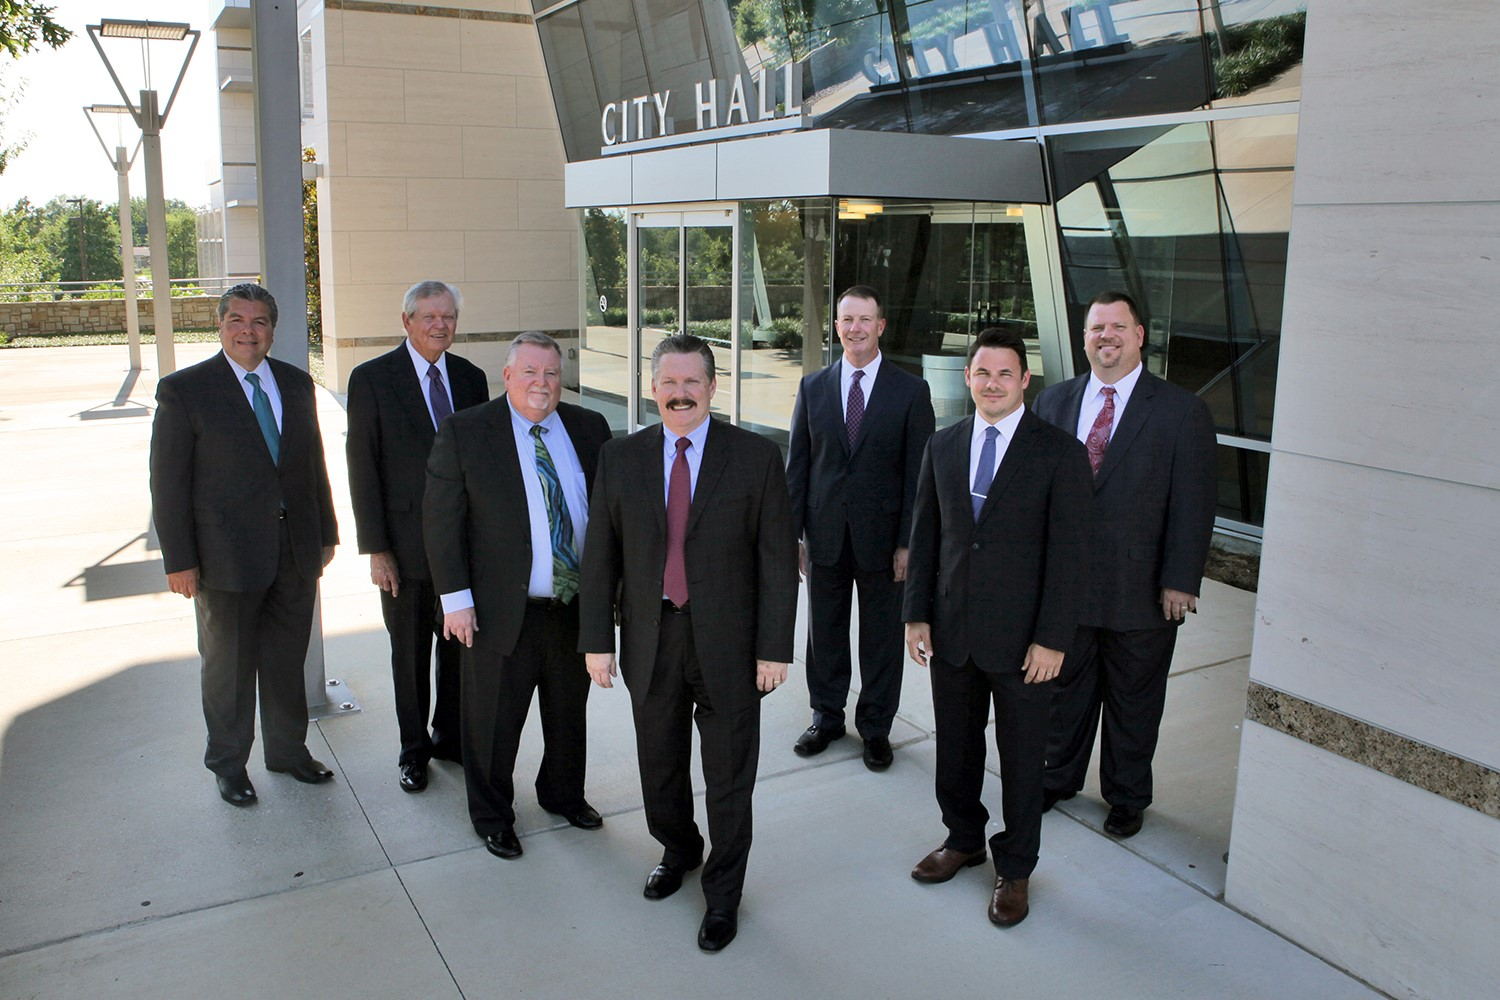 2016 Mesquite City Council-City Hall.jpg